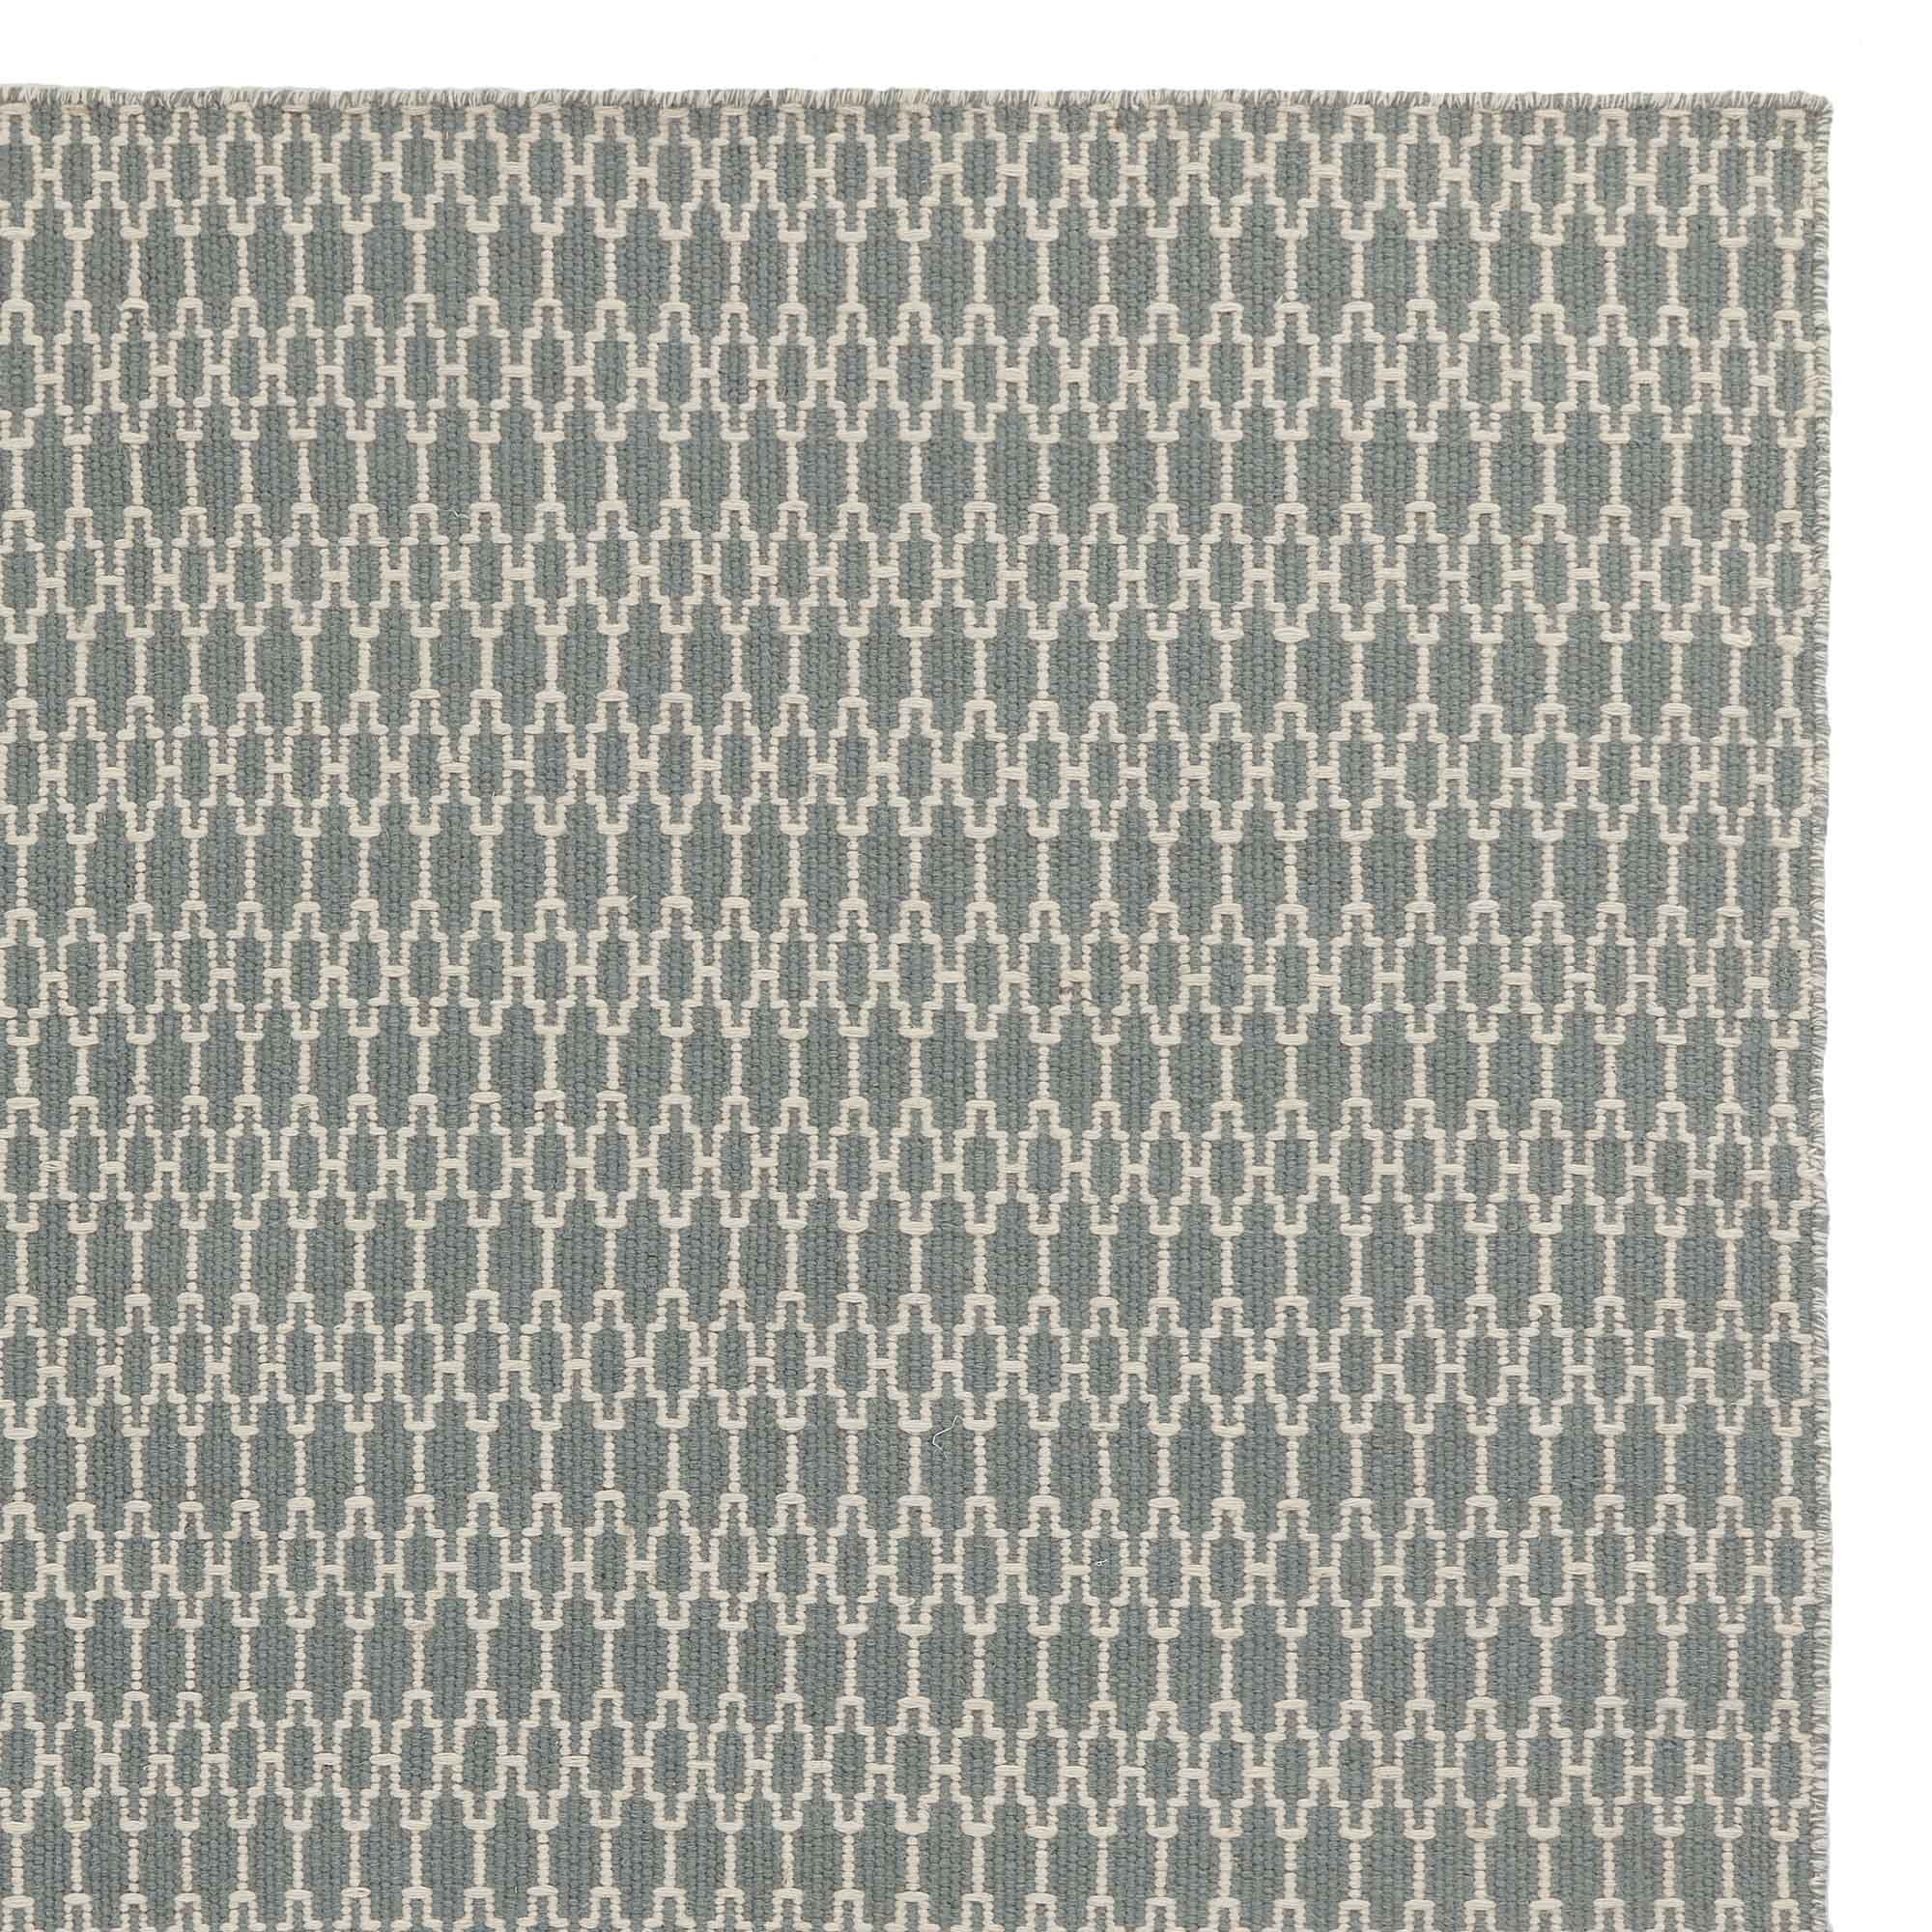 Badela rug, light grey green & ivory, 100% wool